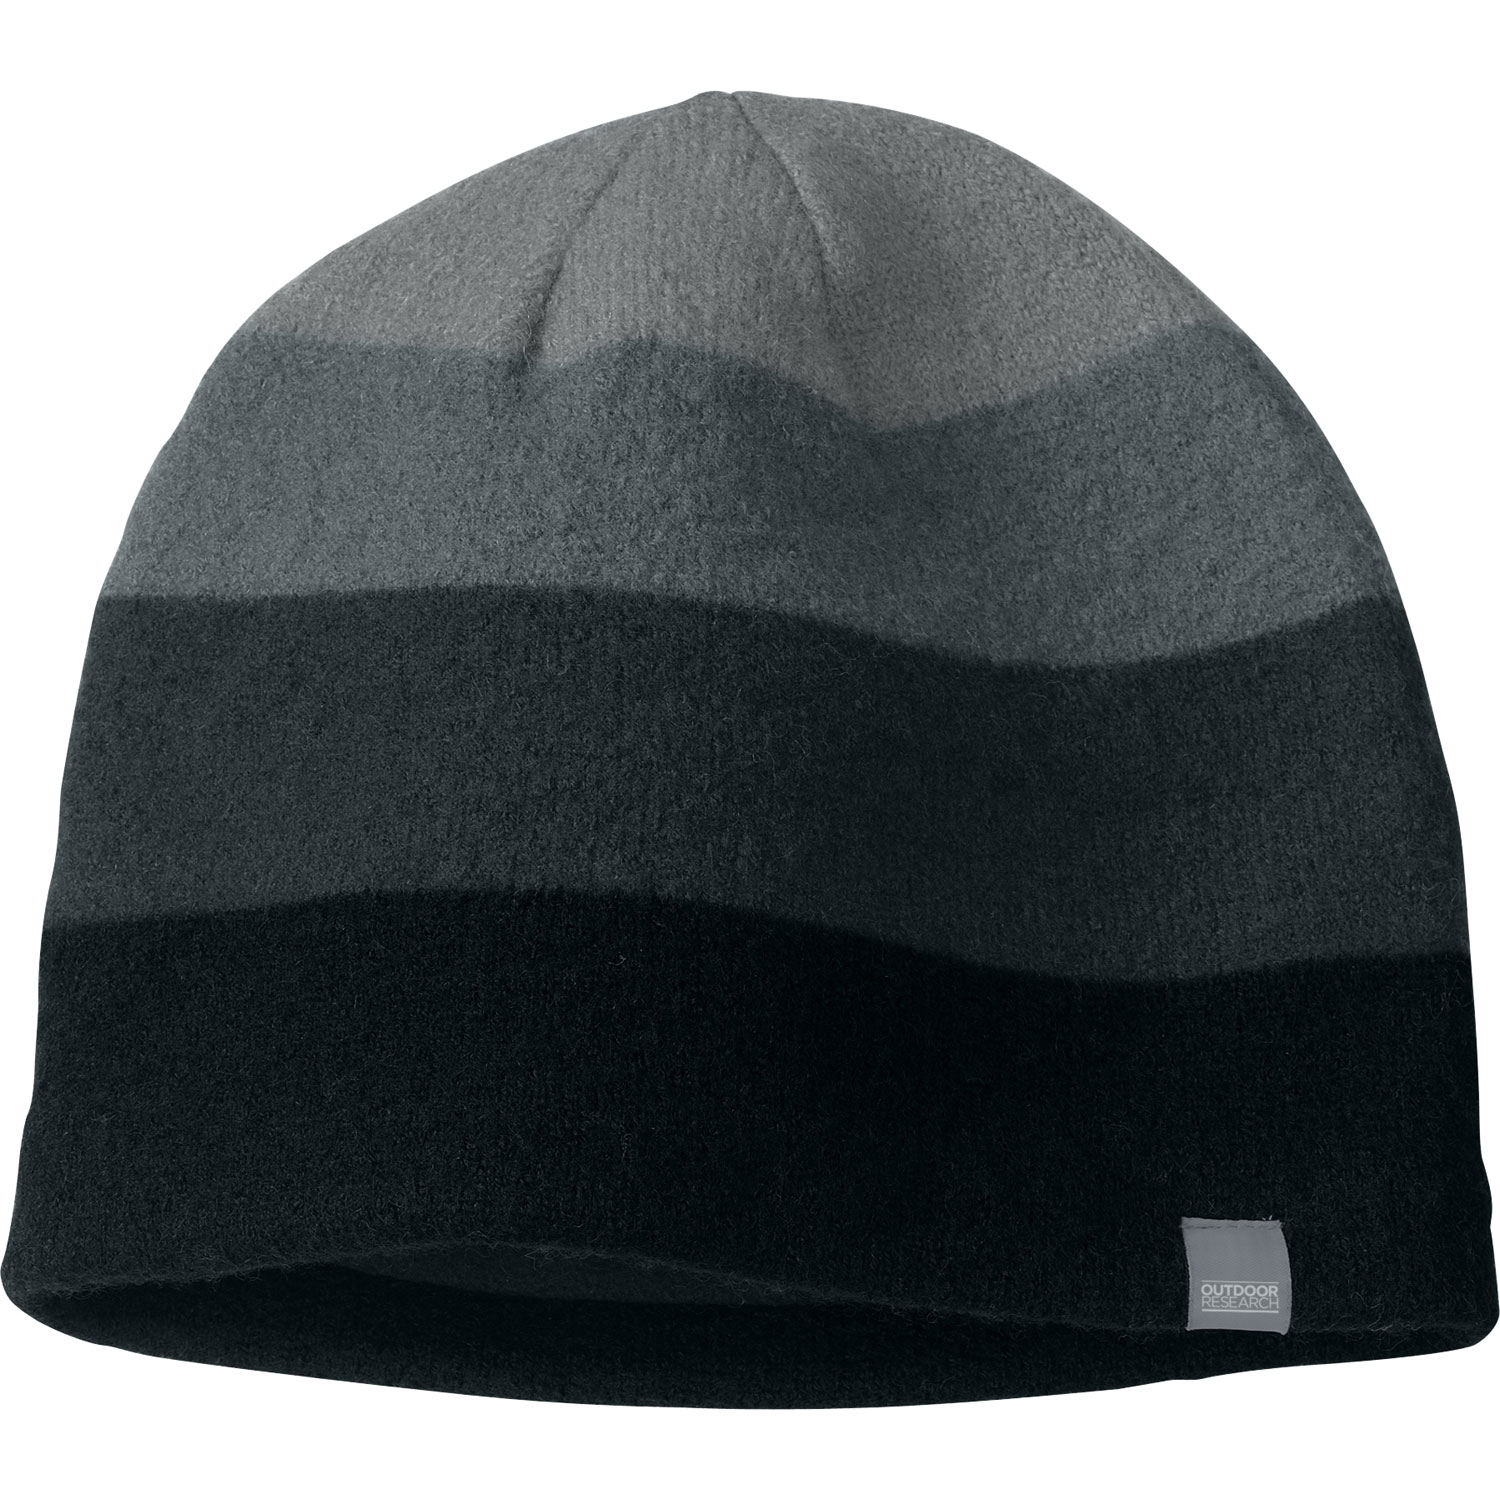 Key Features of the Outdoor Research Gradient Beanie: 100% boiled wool Fleece-lined ear band - $27.00